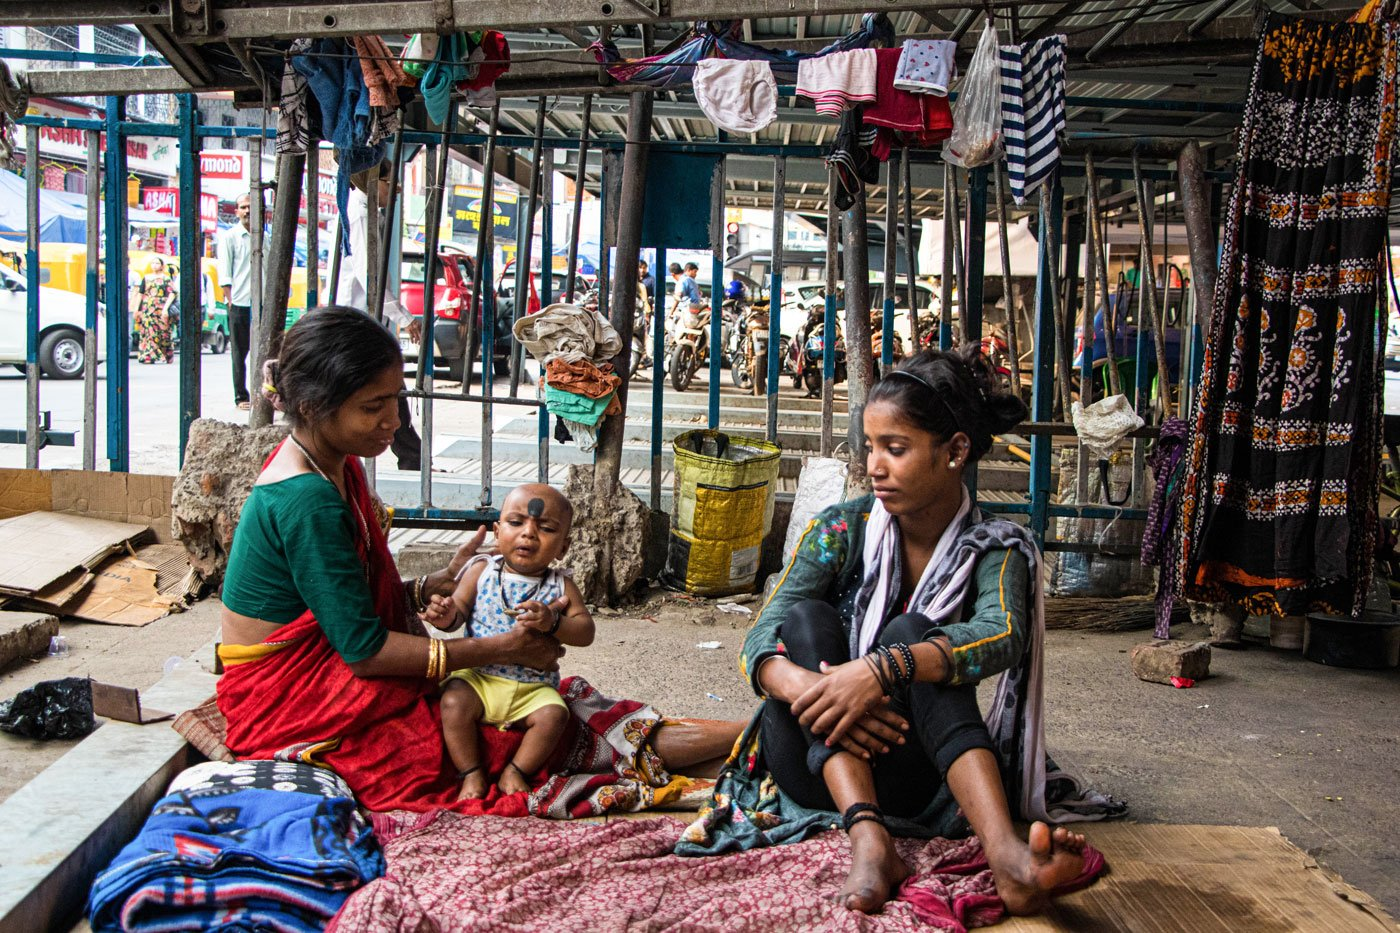 When Cyclone Amphan hit Kolkata on May 20, Sabita (on the left in the right image) huddled under the flyover with her daughter Mampi and grandson